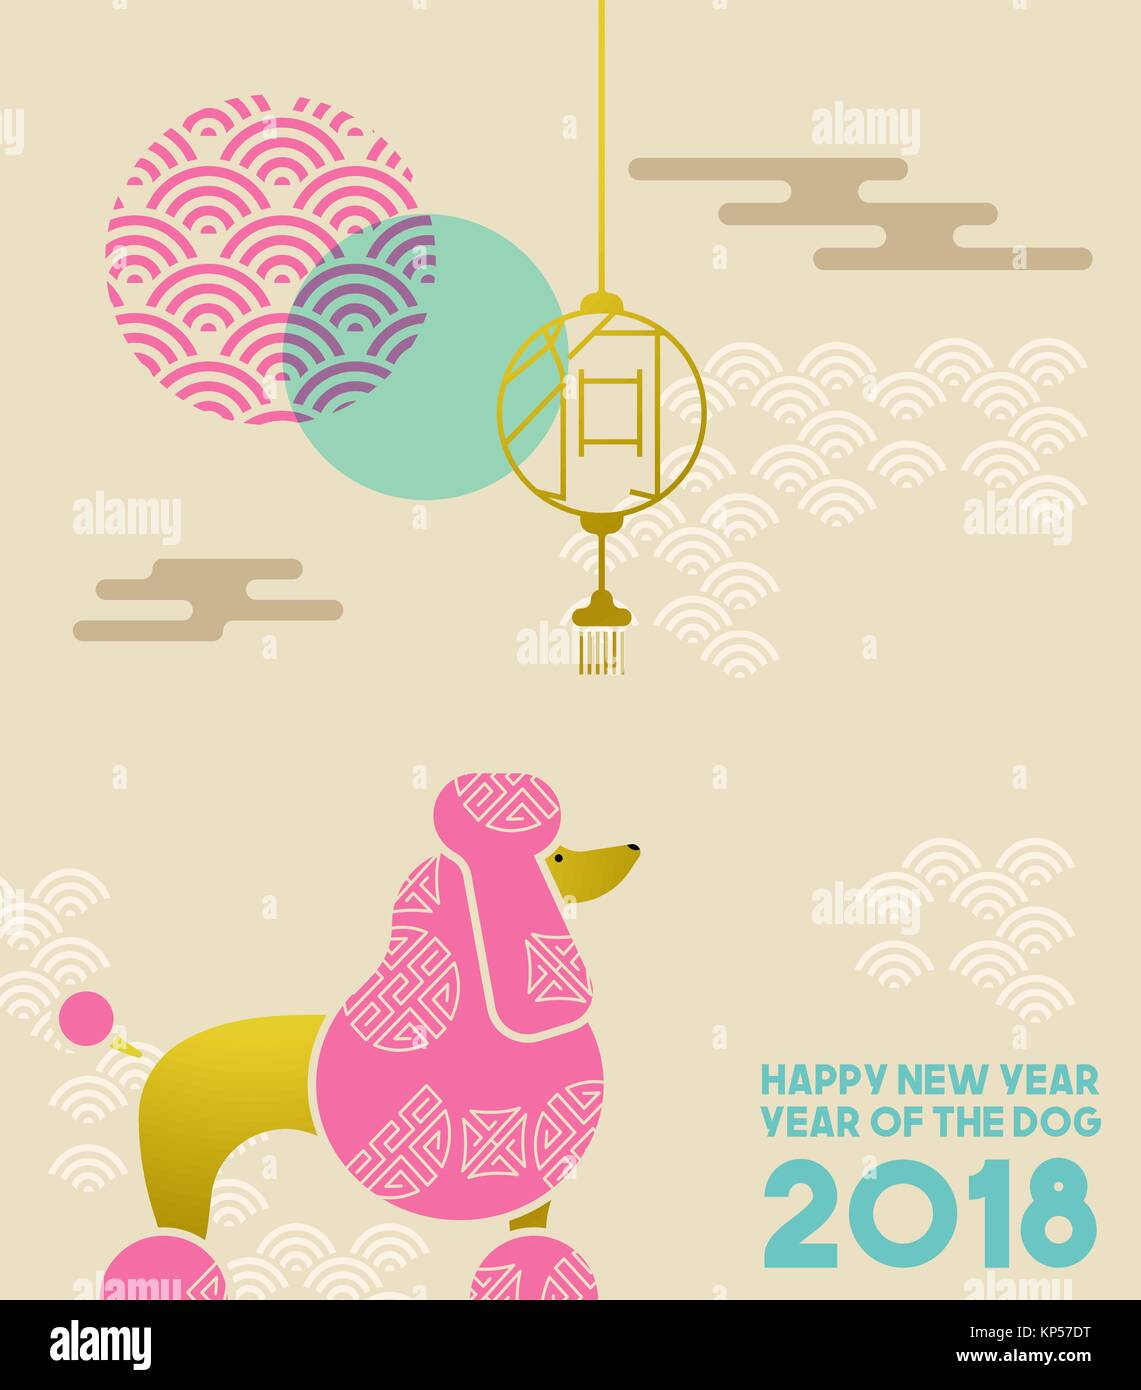 chinese new year 2018 modern poodle illustration in flat art style with traditional calligraphy that means dog and asian decoration eps10 vector